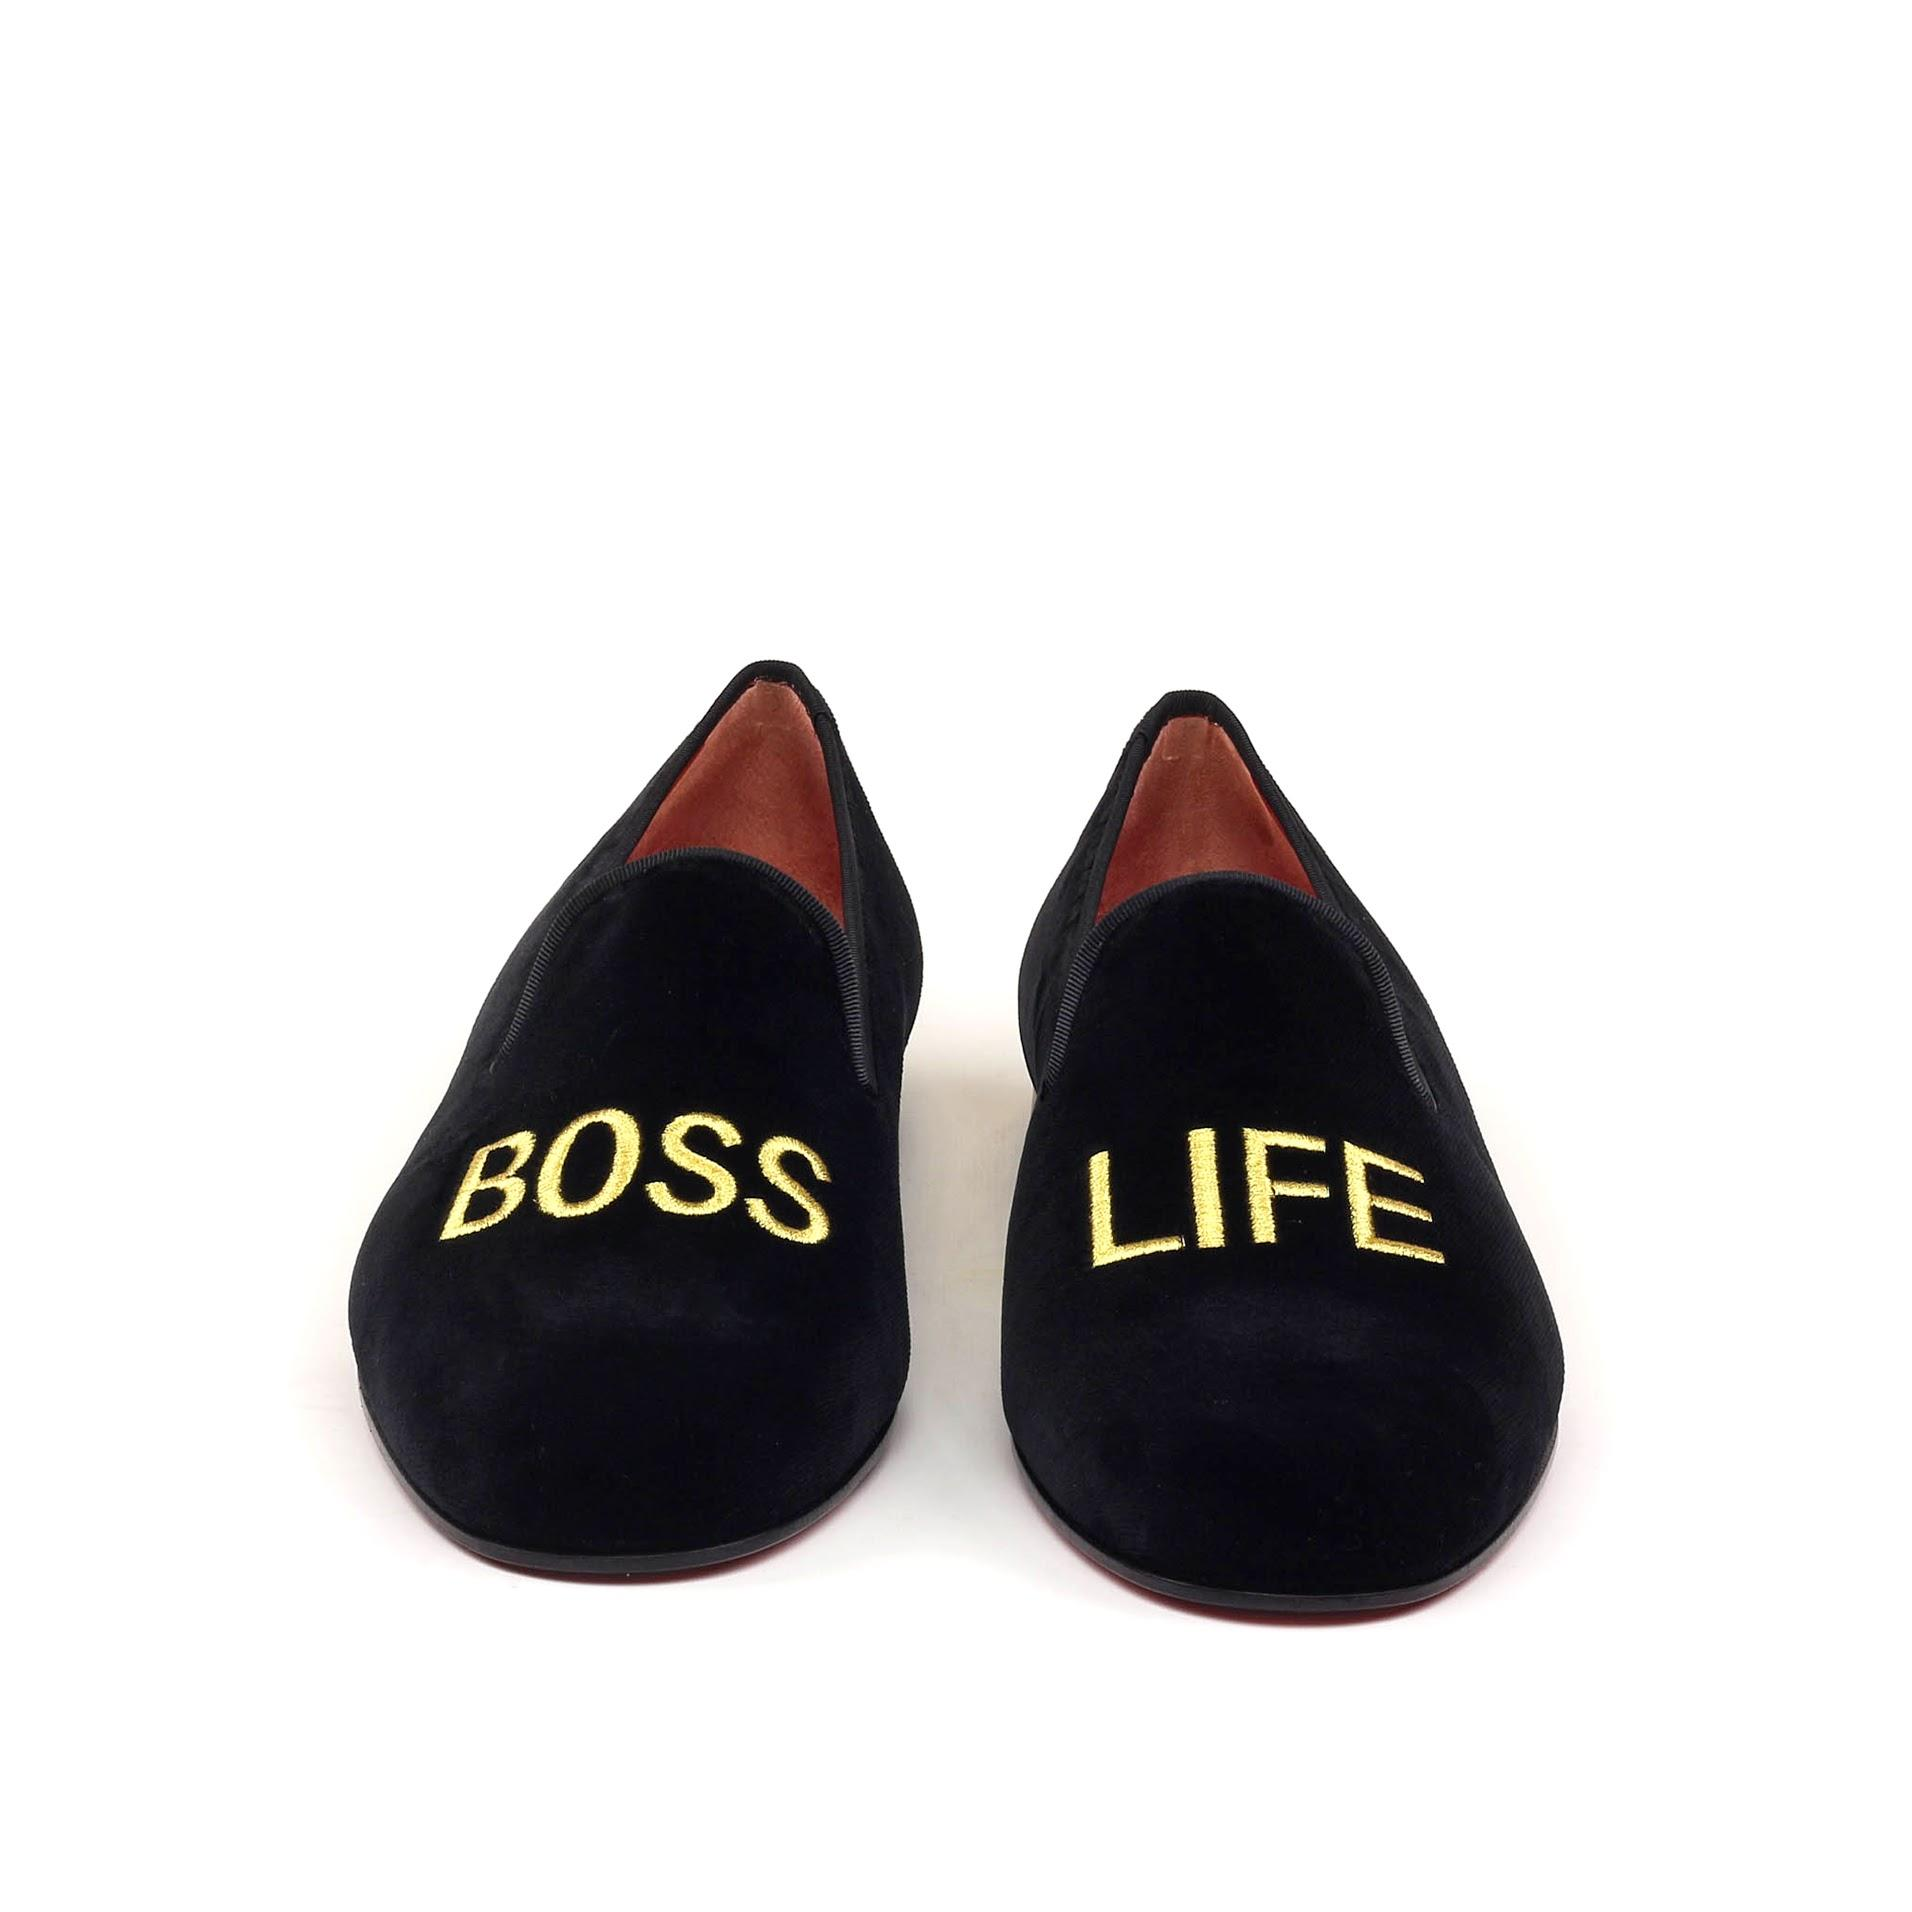 BOSS LIFE Mens Black Velvet Leather Slip On Gold Embroidery Luxury Custom Initials Slippers Front View